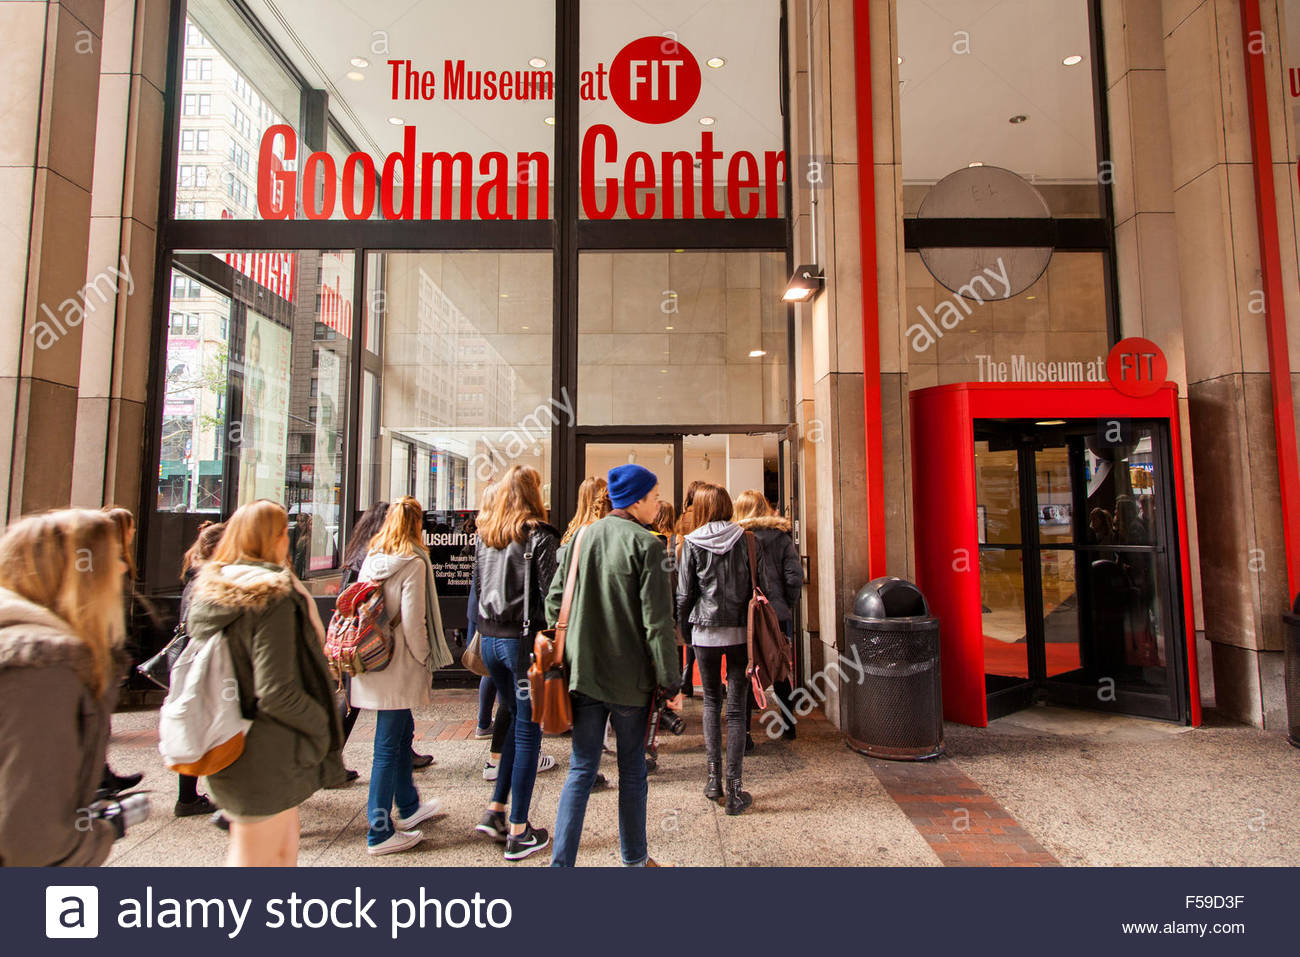 Museum of Contemporary African Diaspora Arts (MoCADA) New York City, The Goodman Center and The Museum at FIT, 7th Avenue, New York ...